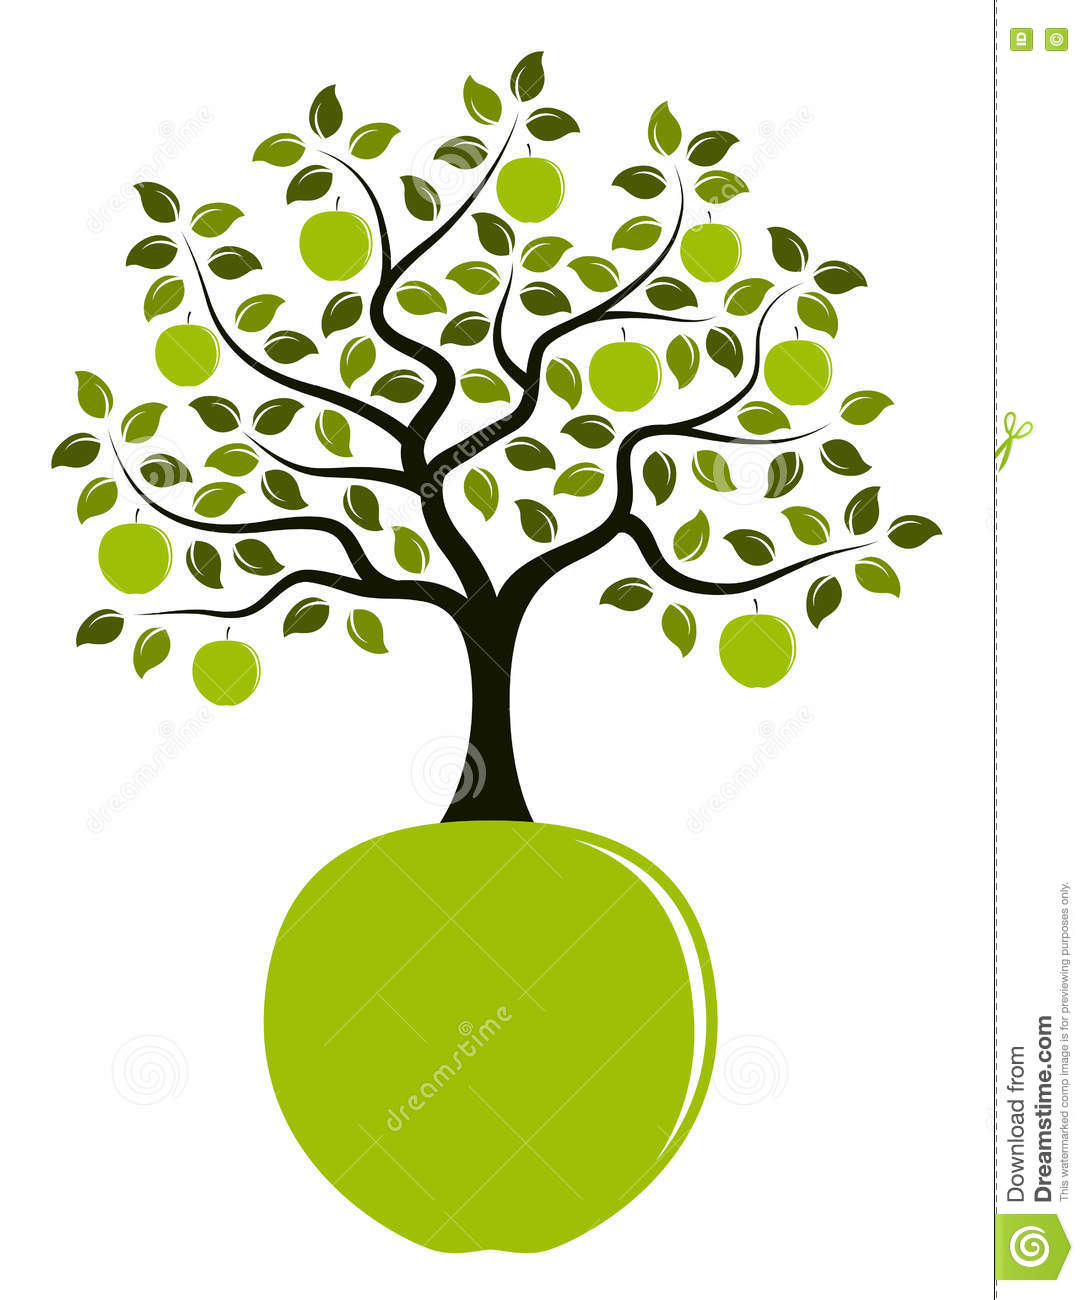 Apple Tree Growing From Apple Stock Illustration ...